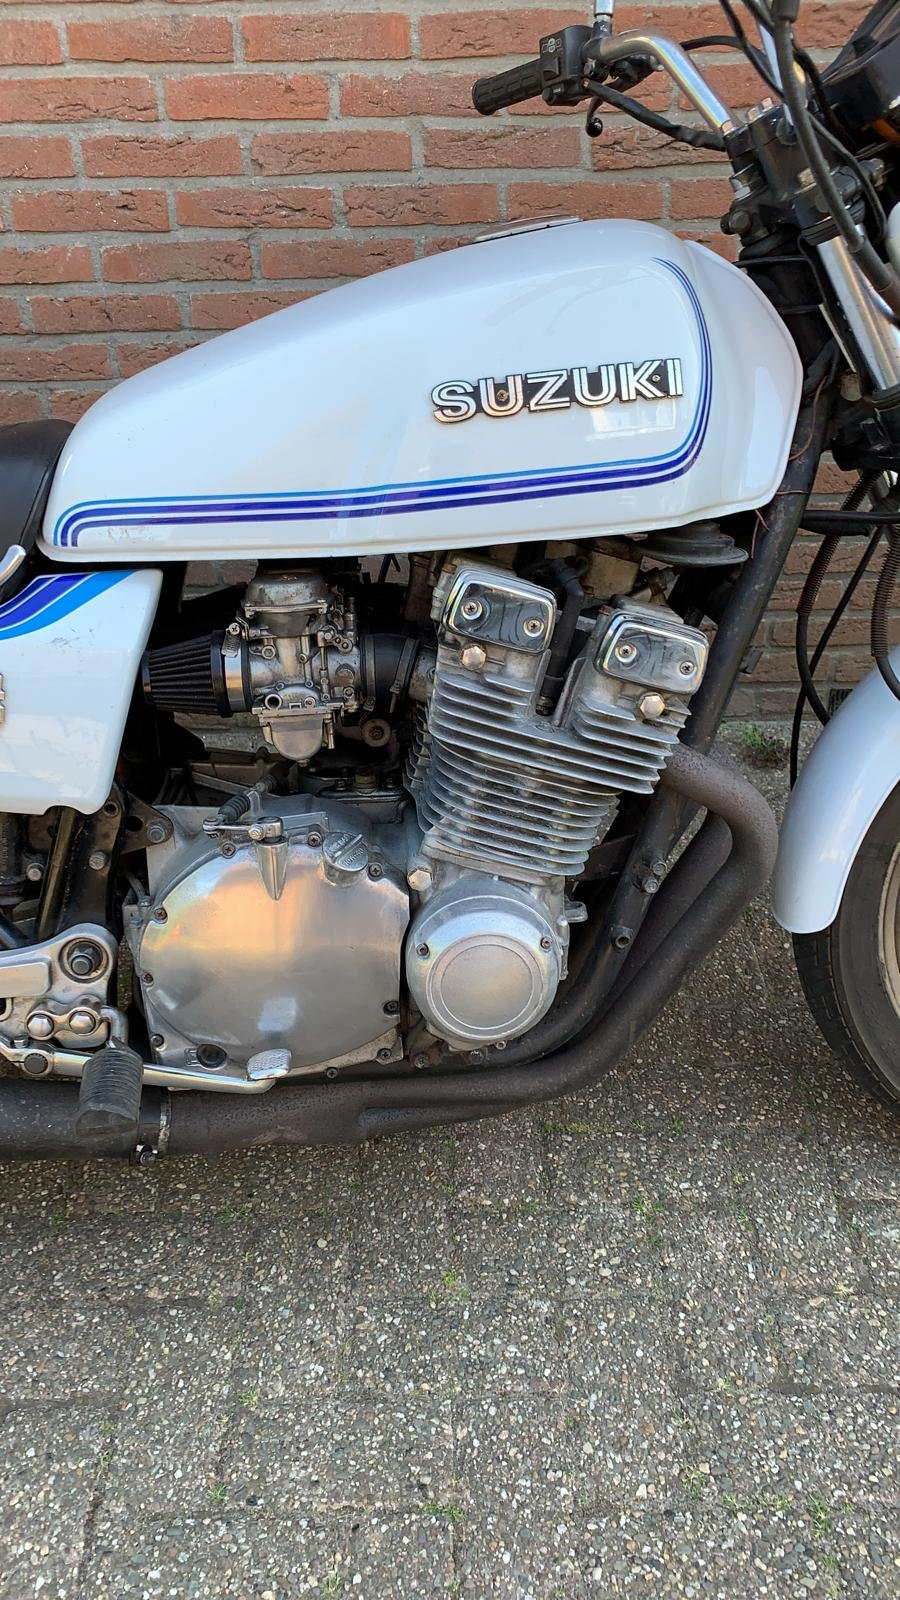 1980 Suzuki GSX 1100 naked version  For Sale (picture 5 of 6)